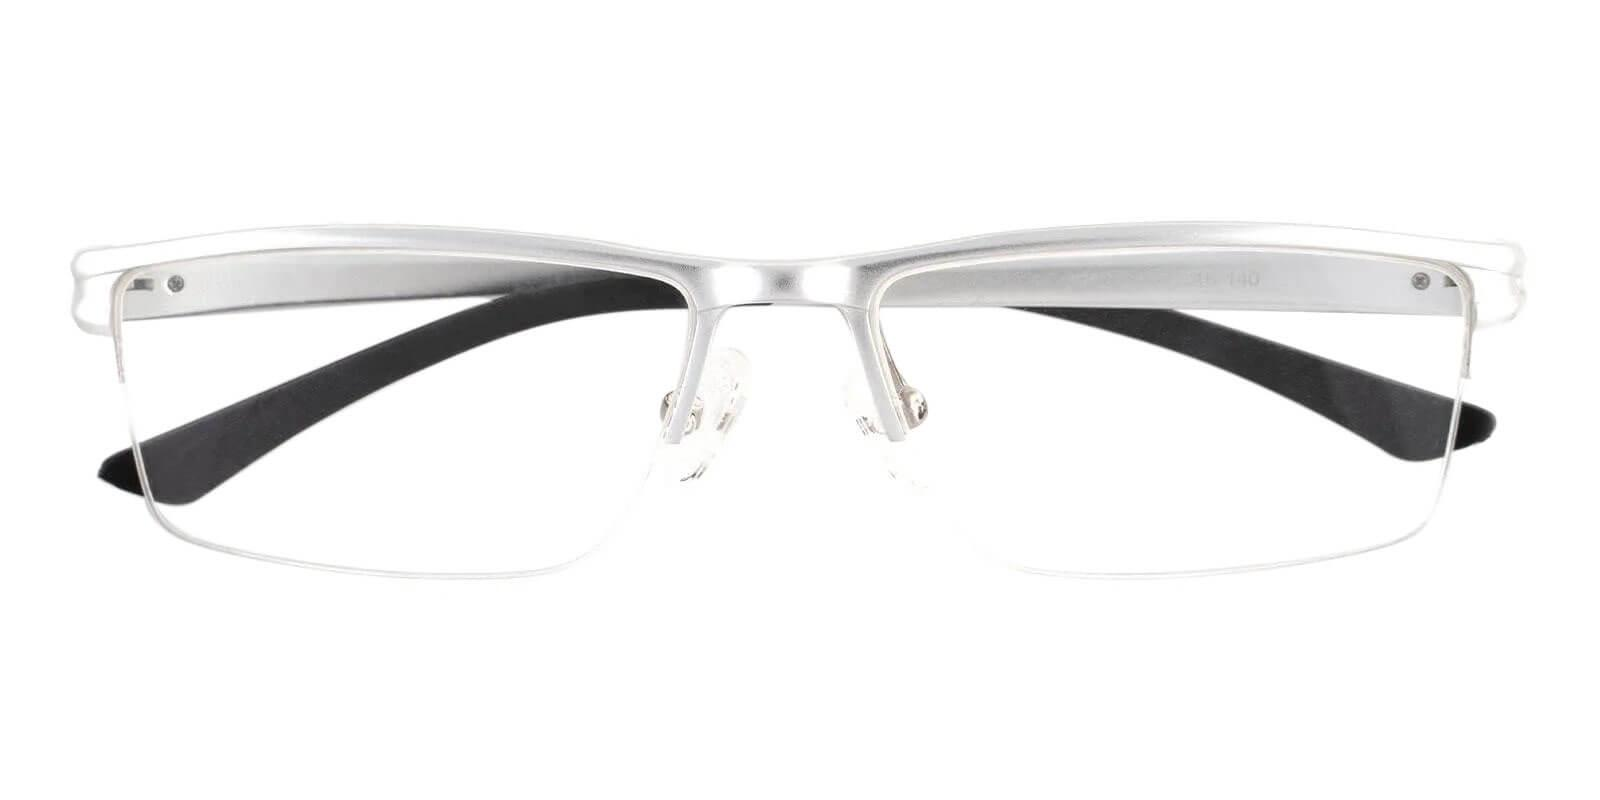 Galileo Silver Metal NosePads , SportsGlasses , SpringHinges Frames from ABBE Glasses